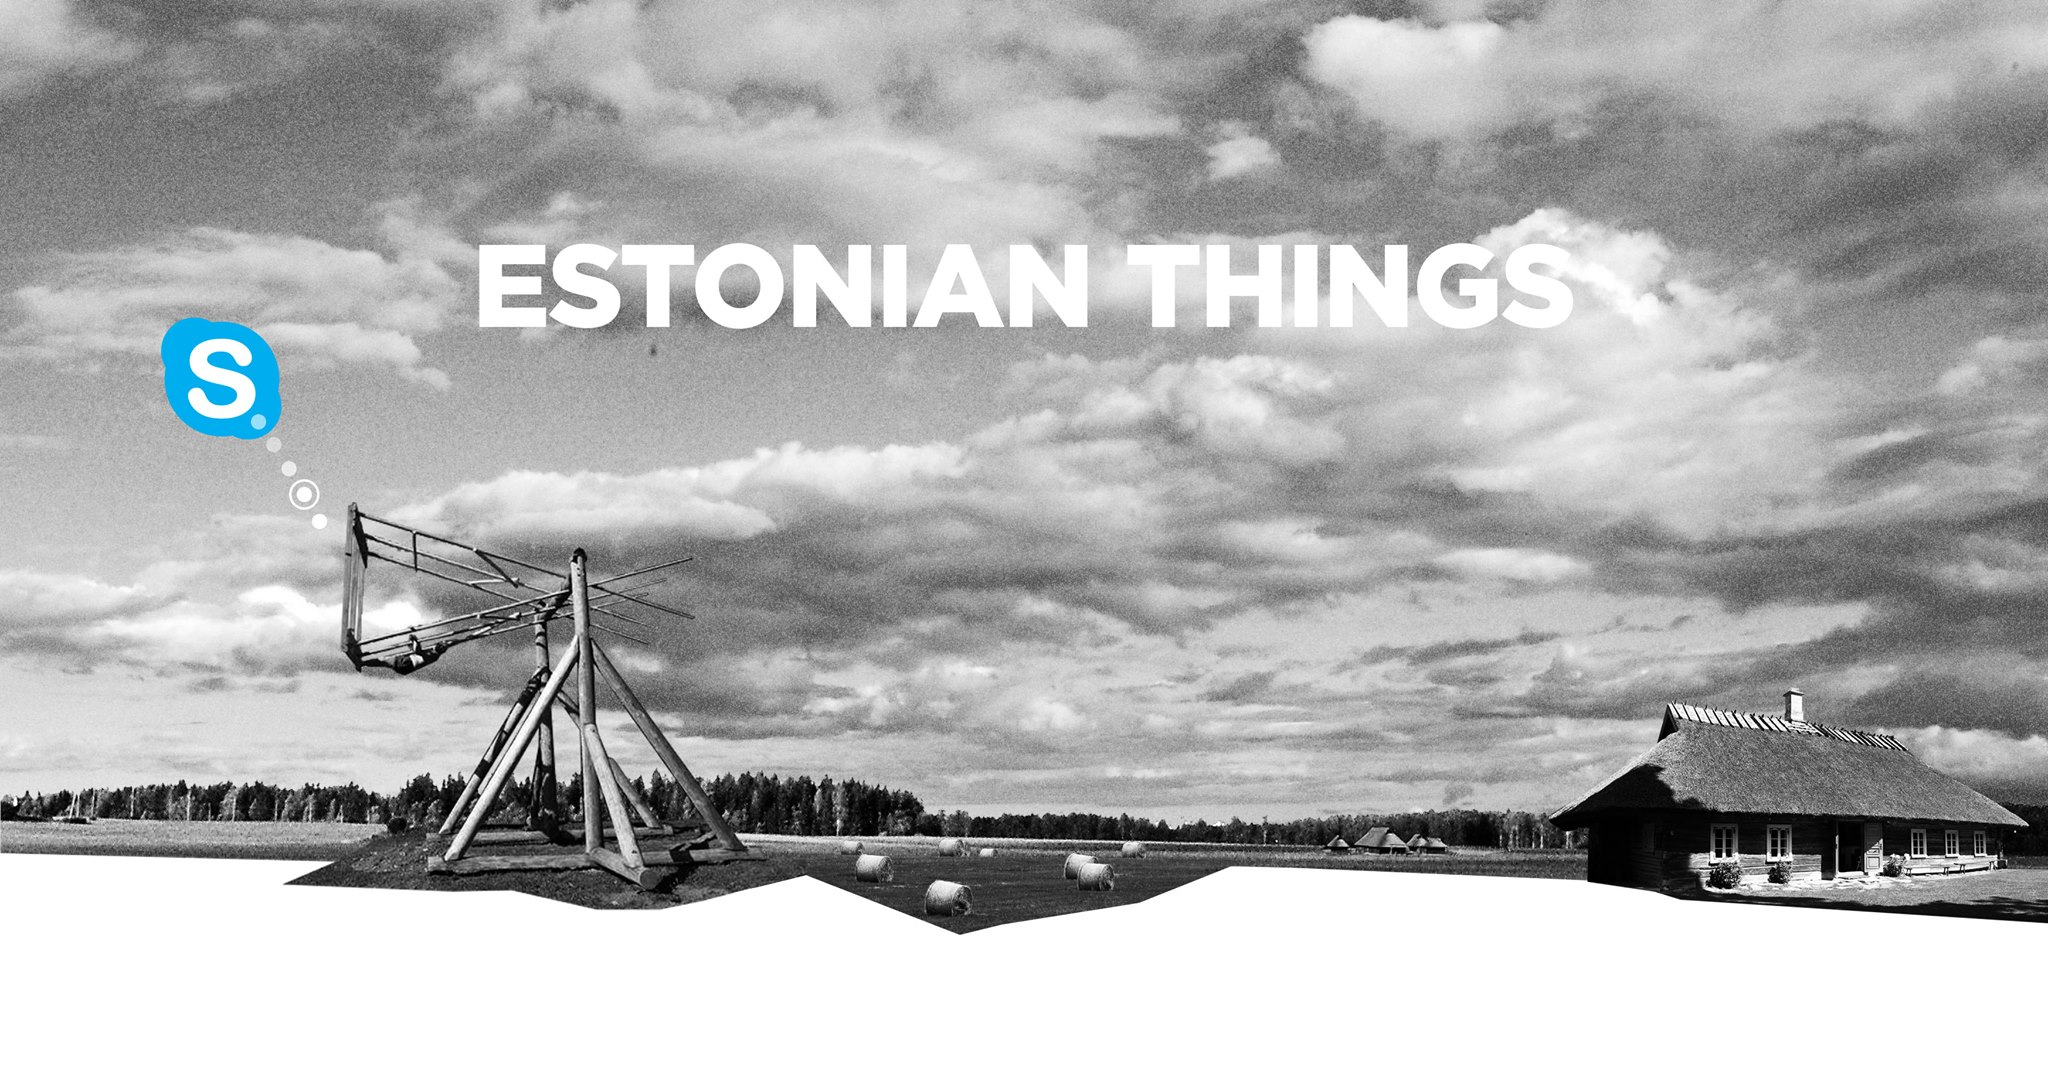 10 Strange Things About Estonia You Probably Didn't Know